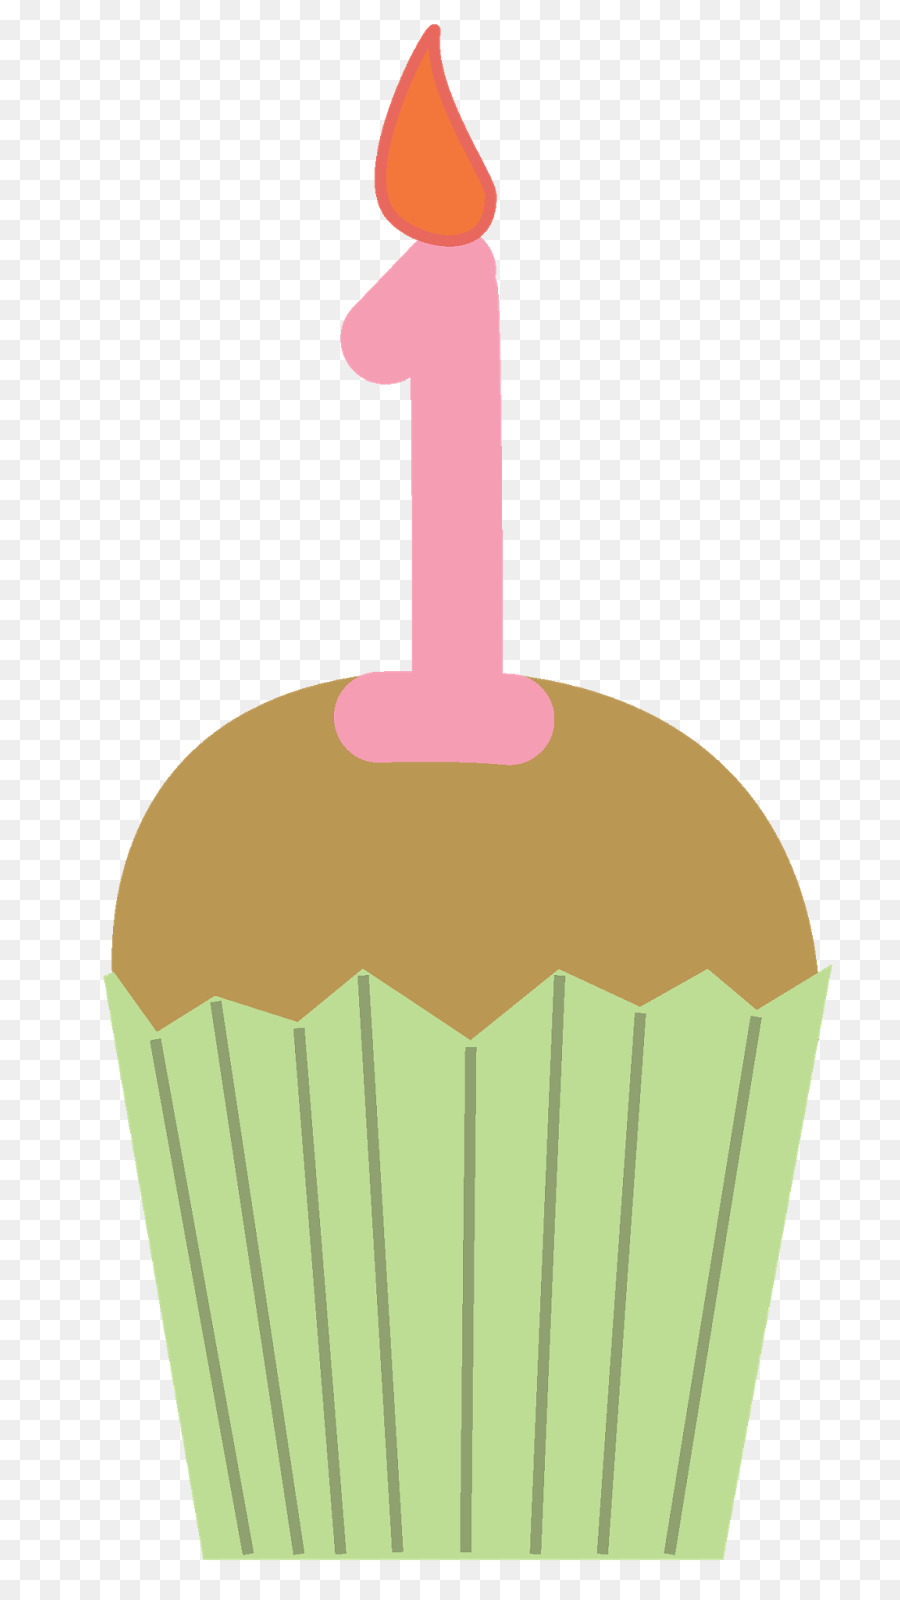 Download 1st birthday cupcake clipart Birthday Cupcakes Clip art.